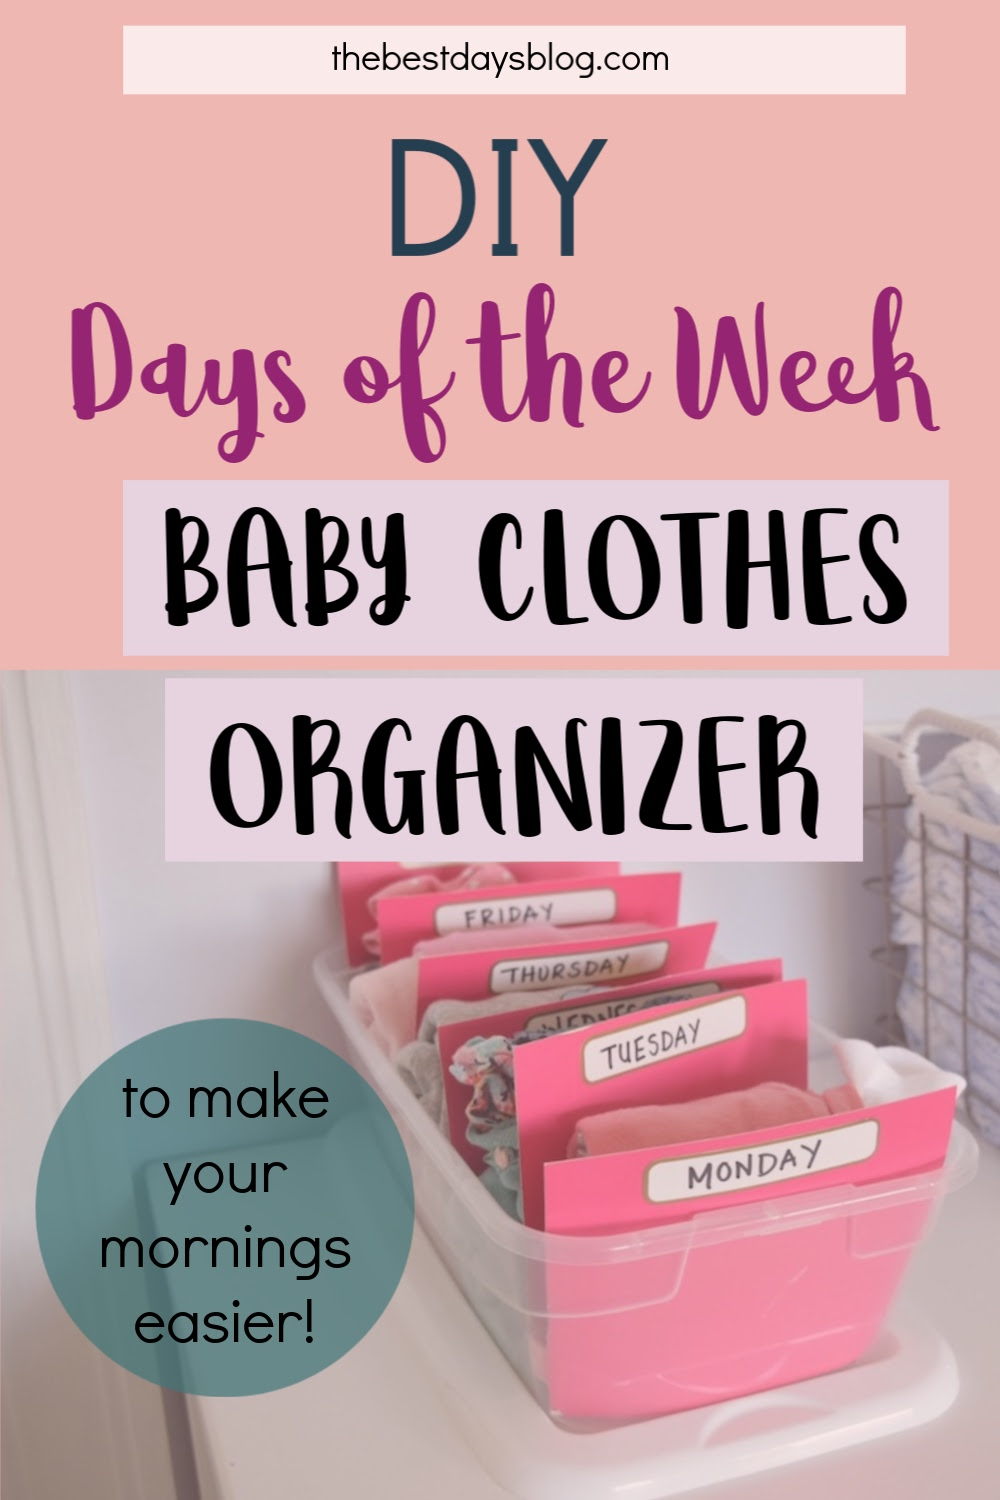 DIY days of the week baby clothes organizer